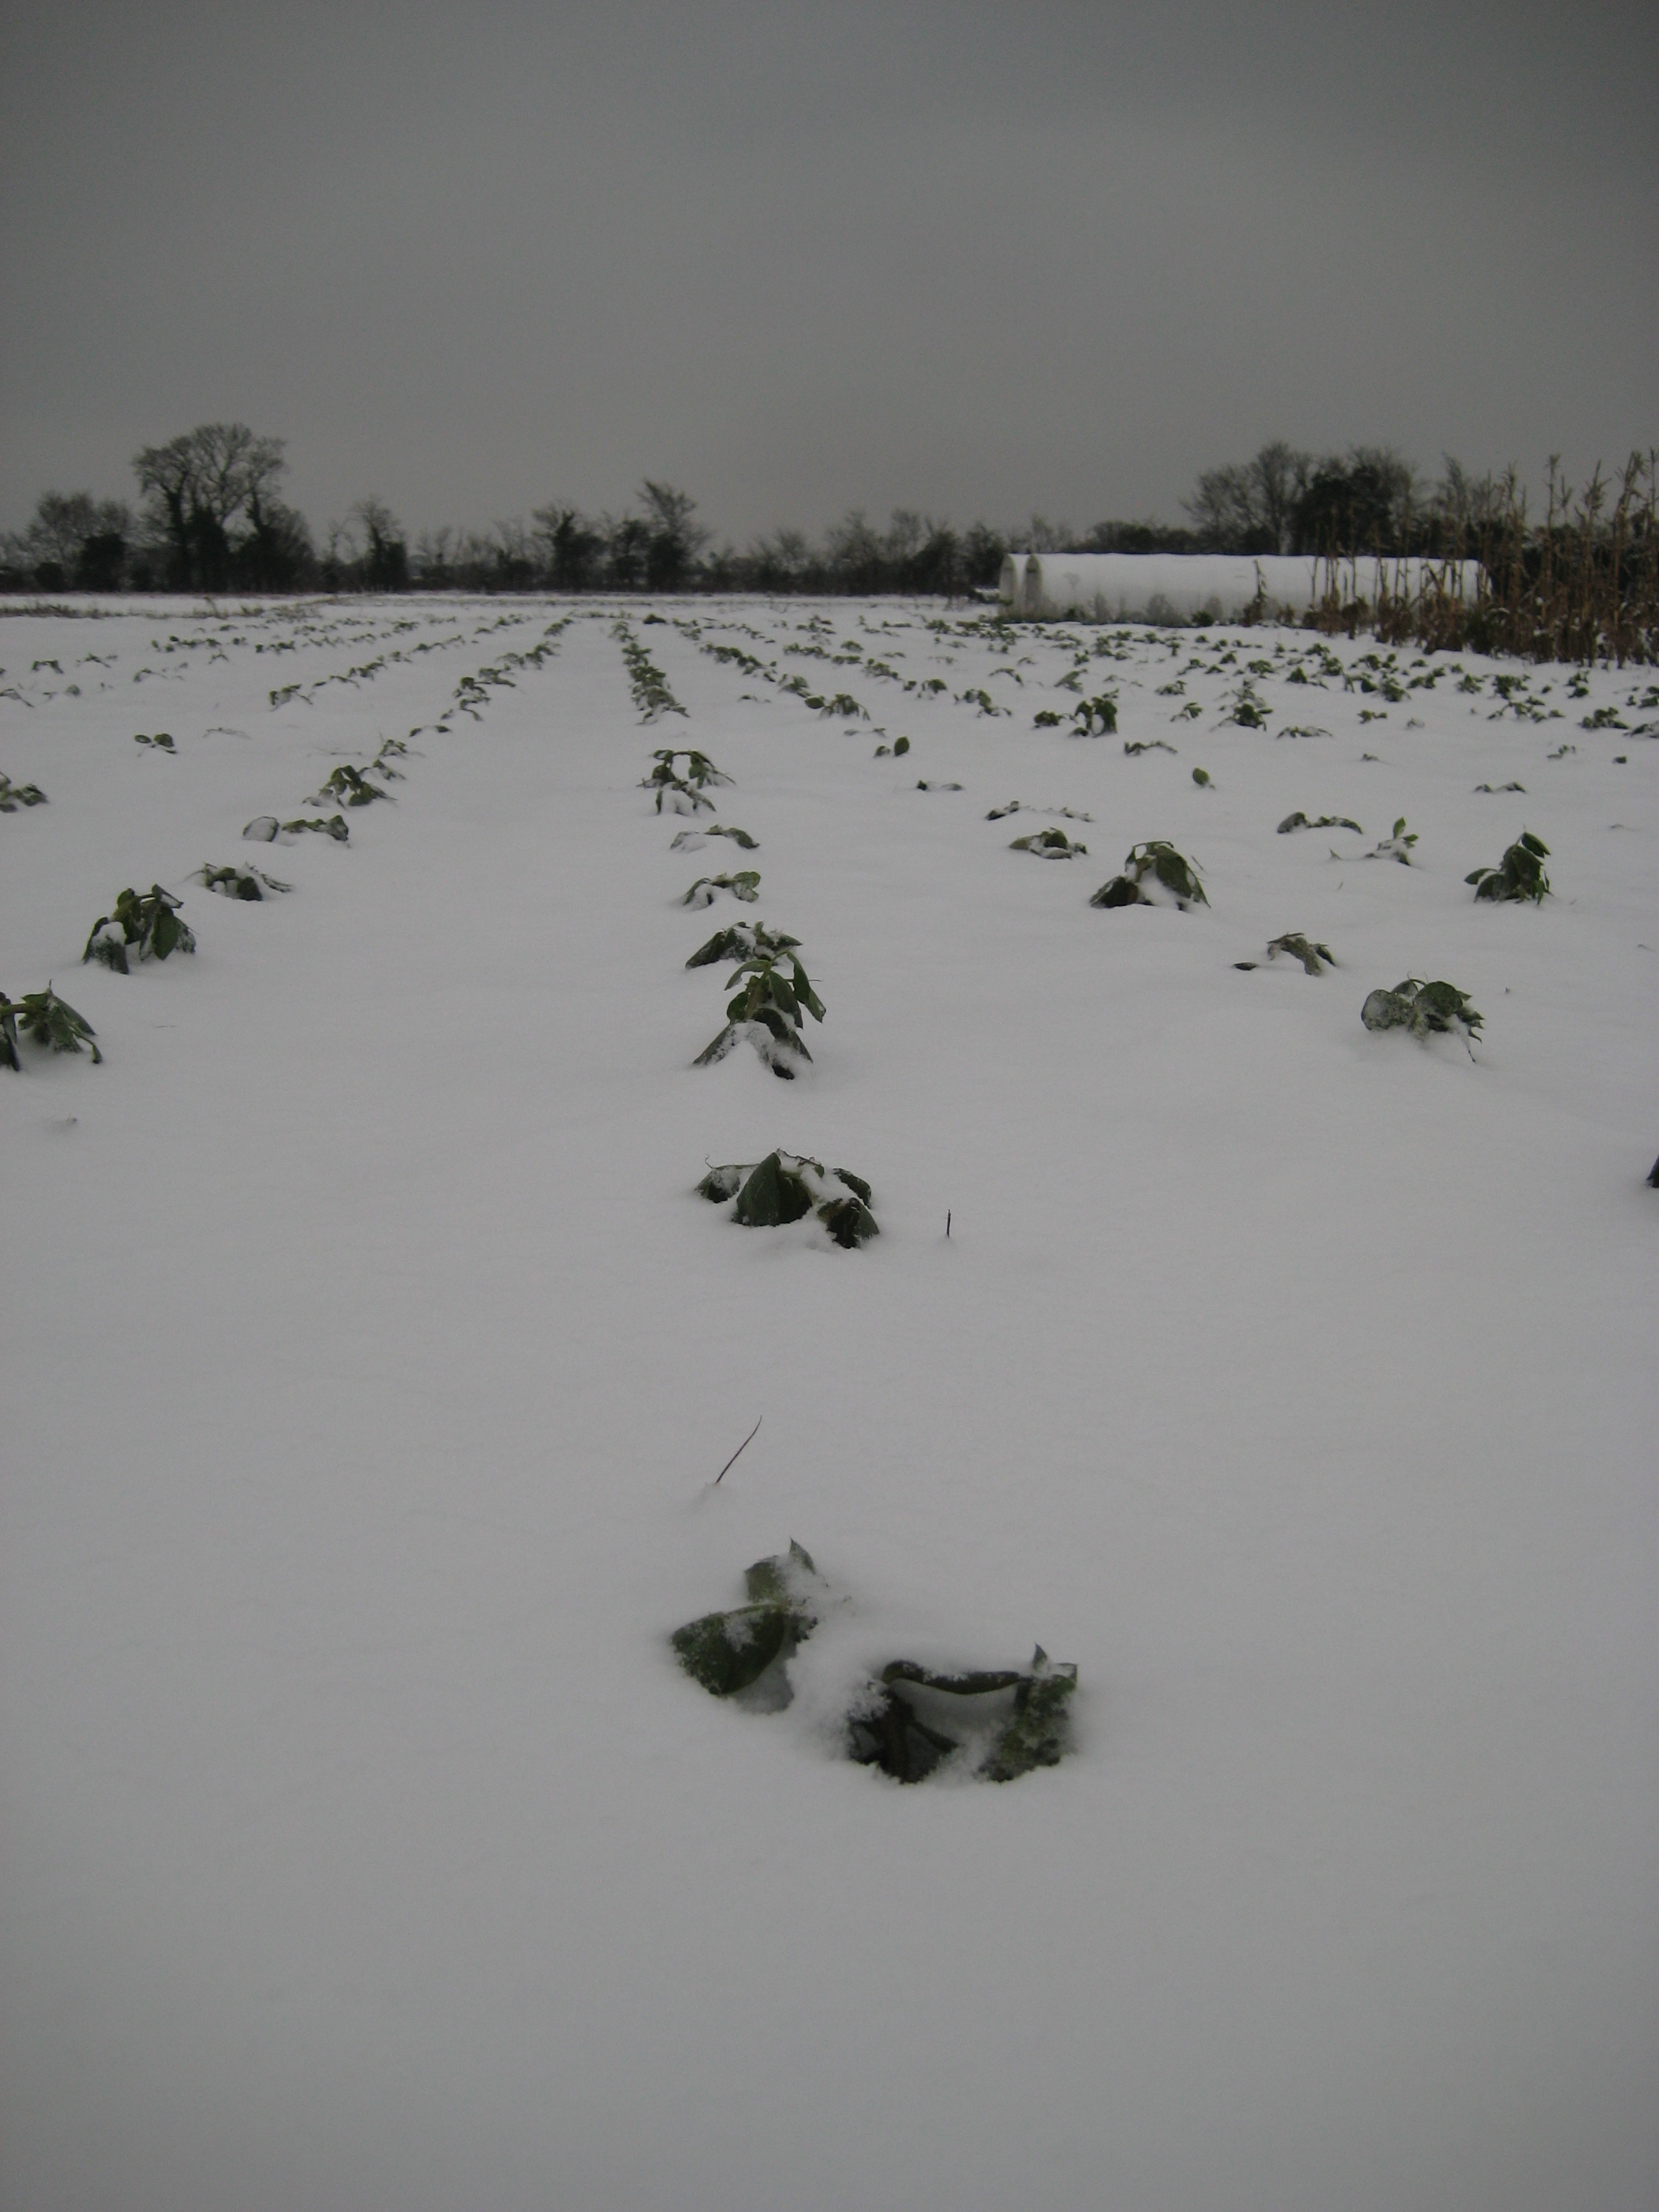 Broad beans buried in snow